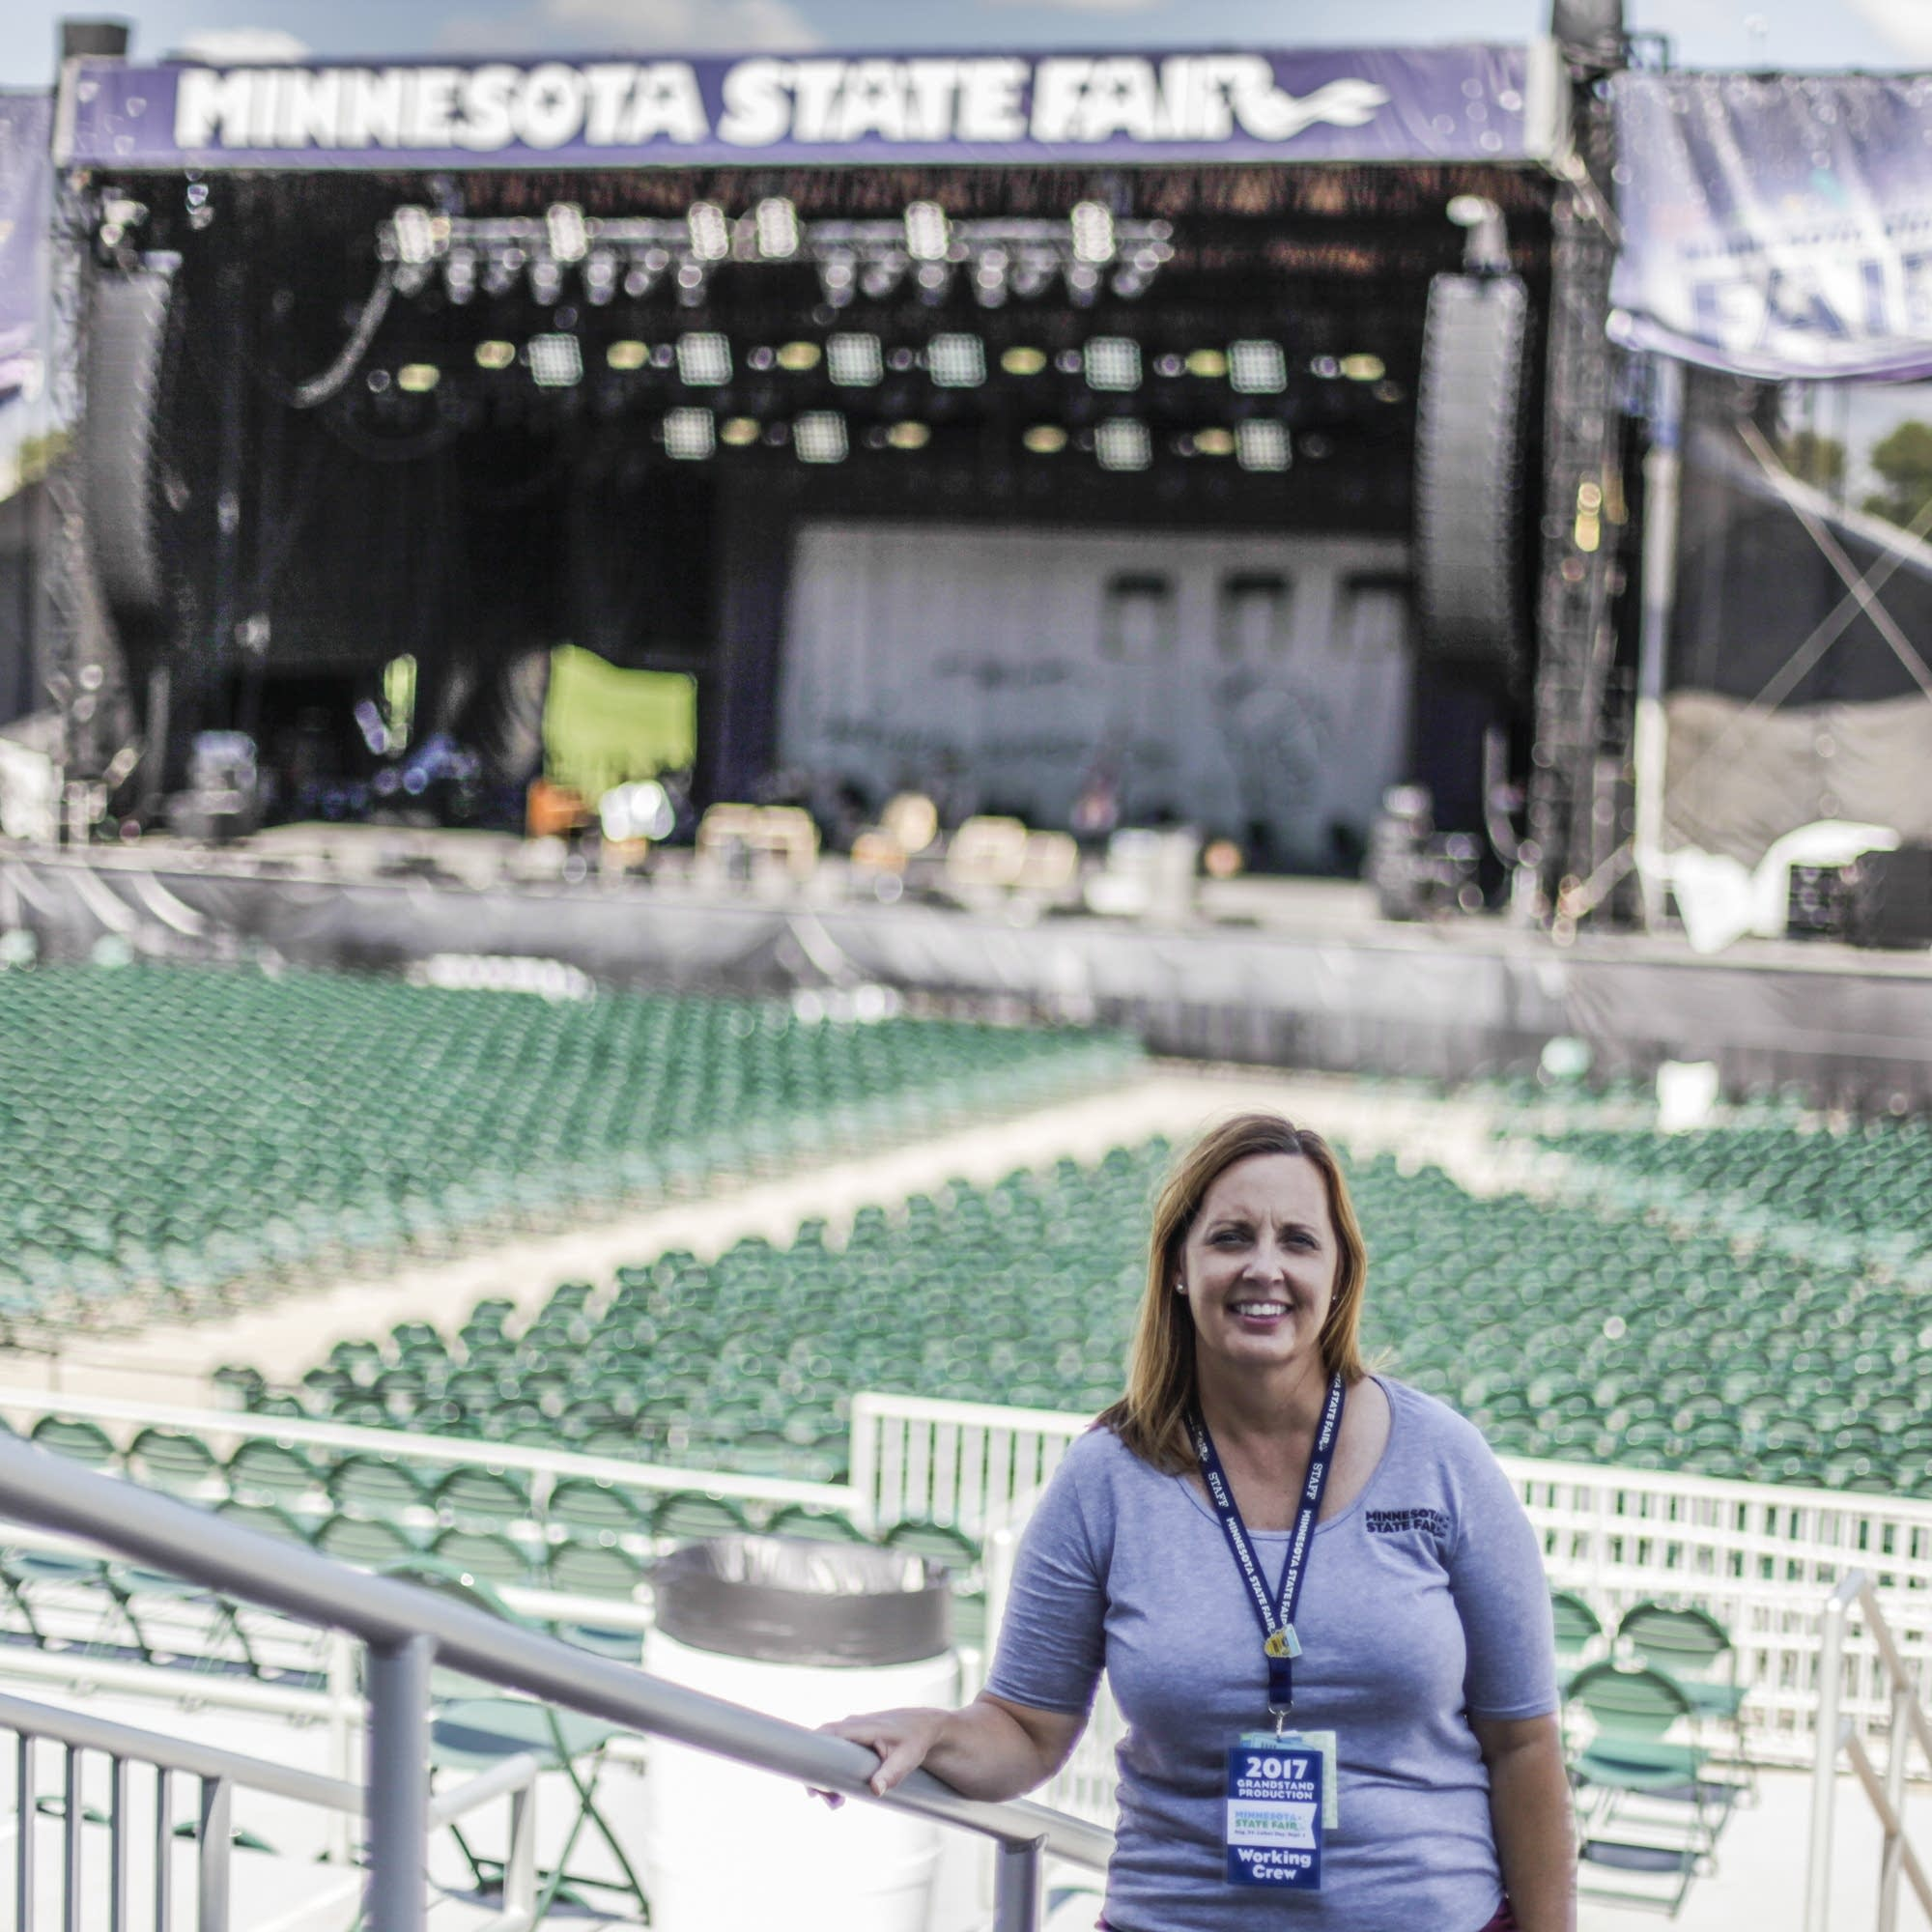 State Fair Grandstand Guru Shares How She Almost Booked Prince The Cur